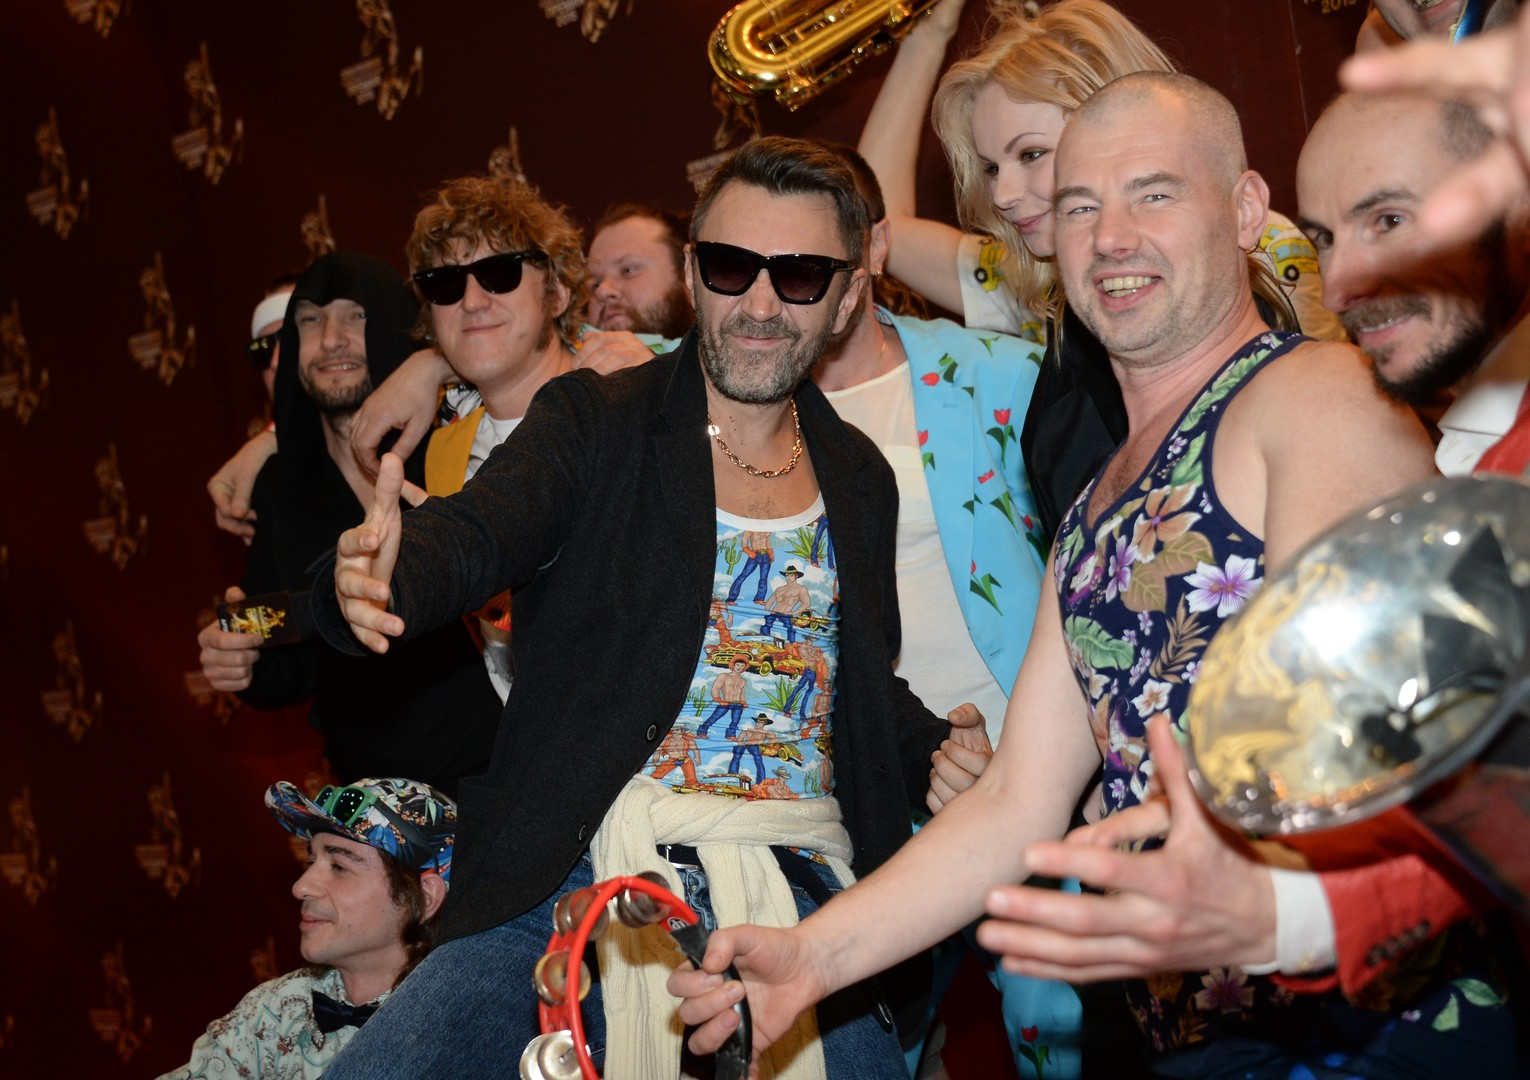 Leningrad frontman Sergei Shnurov, center, at the First Russian National Music Awards at Crocus City Hall in Moscow. 12/10/2015